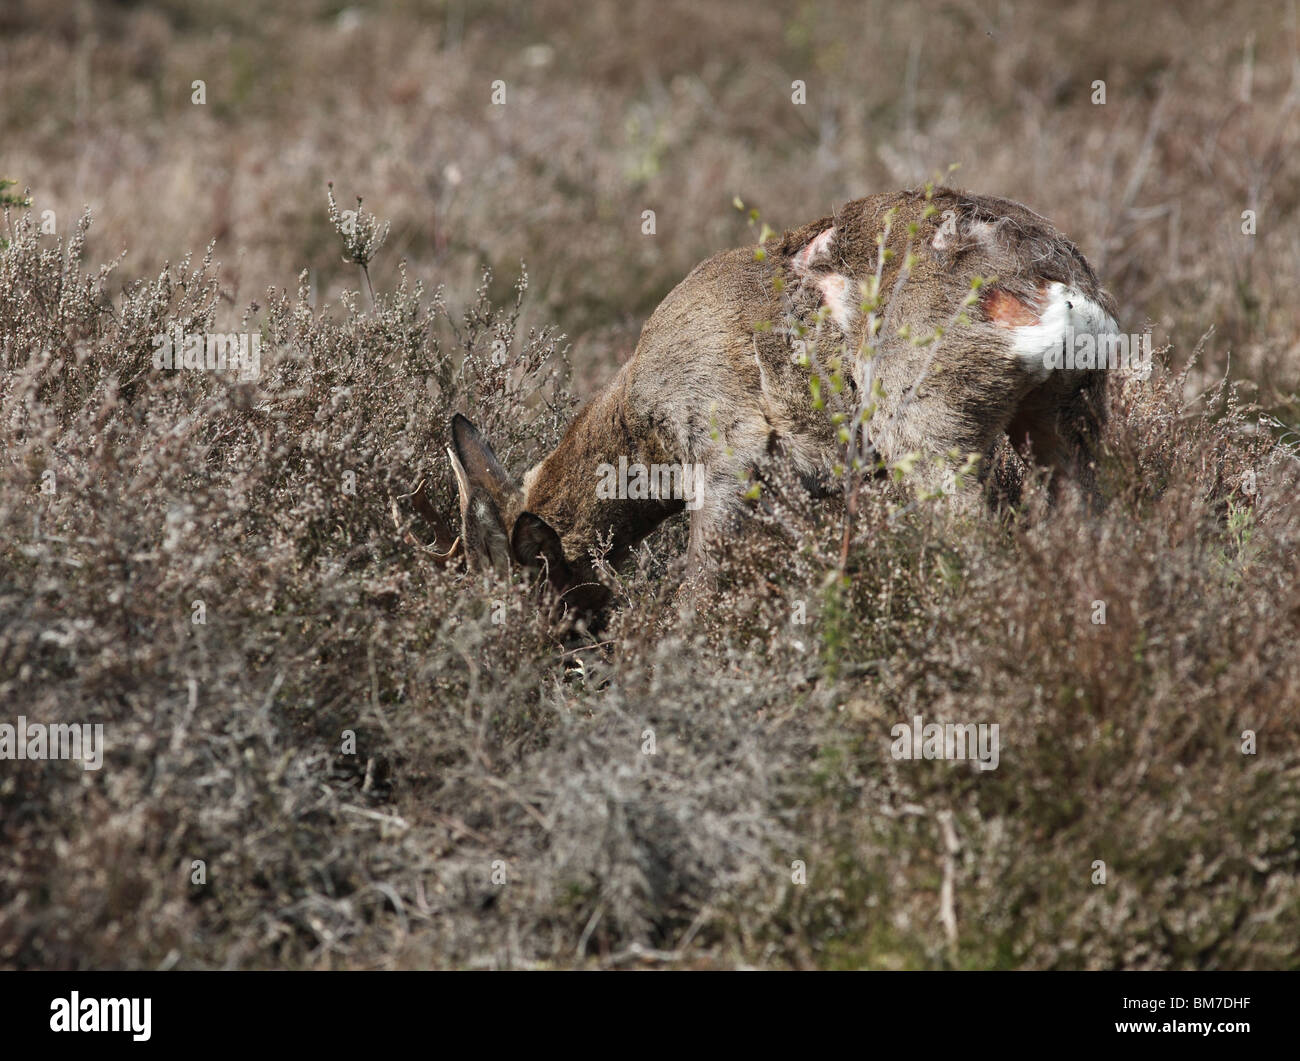 Roe deer (Capreolus capreolus) buck showing fight damage to body - Stock Image